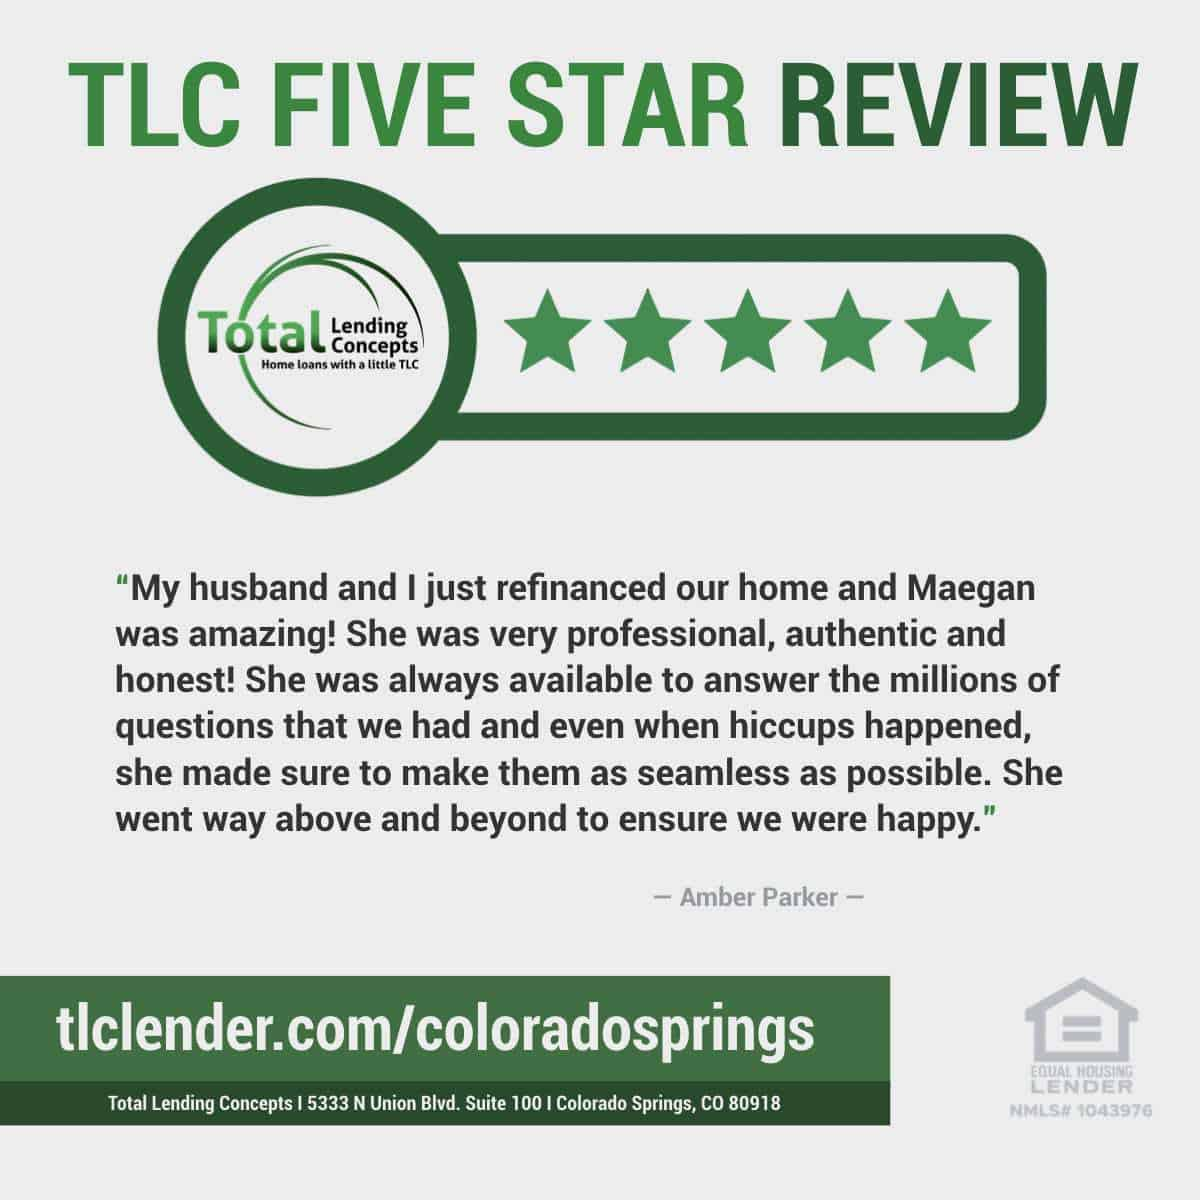 Total-Lending-Concepts-Five-Star-Review-Amber-Parker-in-Colorado-Springs-Colorado-for-Maegan-Home-Mortgage